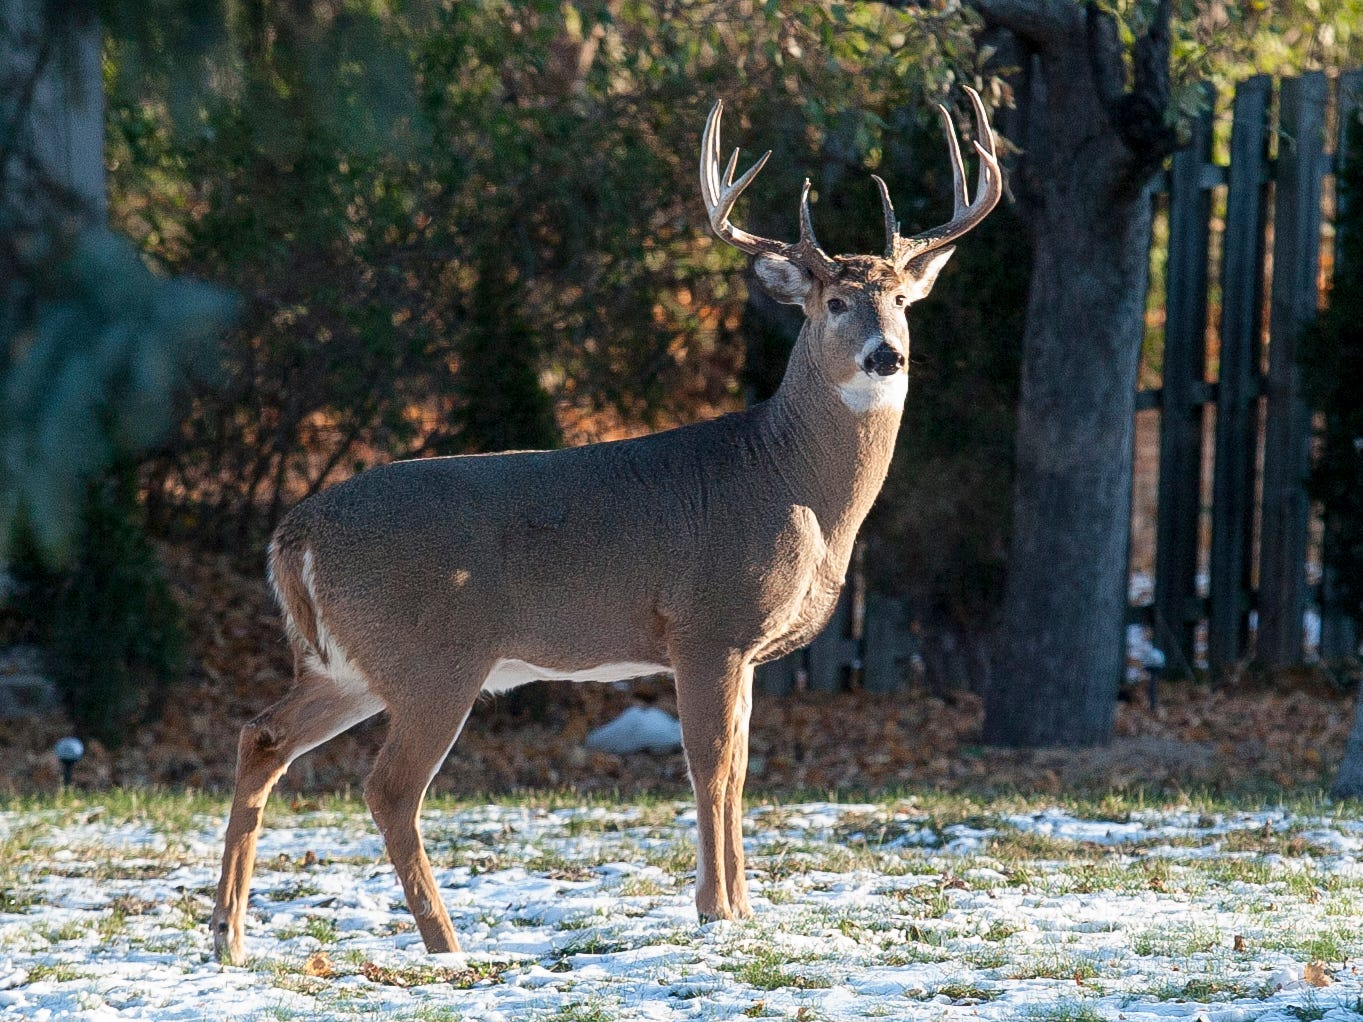 A buck scans the backyard of a City of Sheboygan home in the 1000 block of N. 23rd Street, Wednesday November 14, 2018, in Sheboygan, Wis.